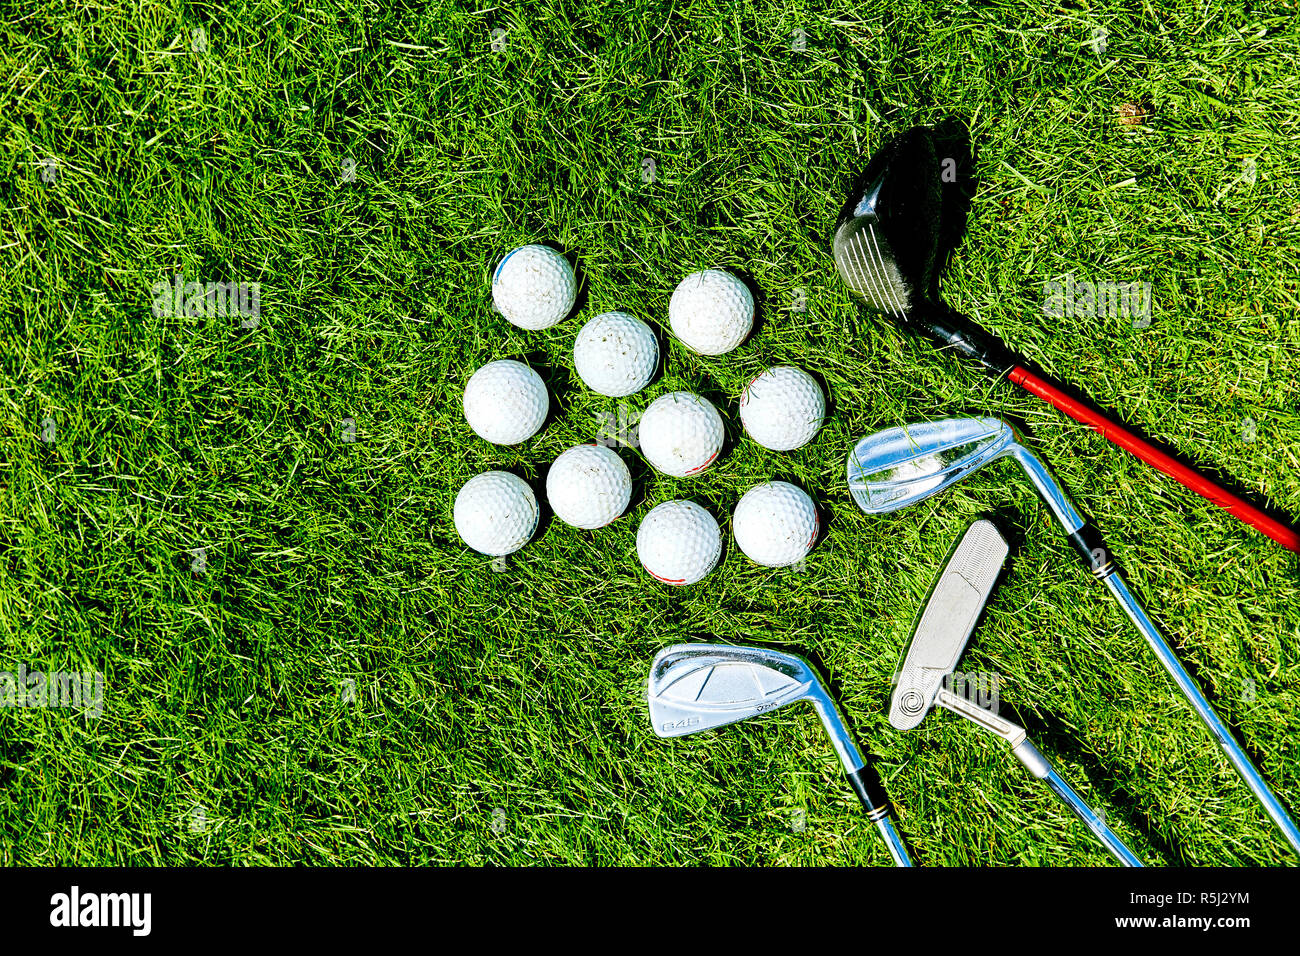 golf clubs and balls on grass background for text Stock Photo